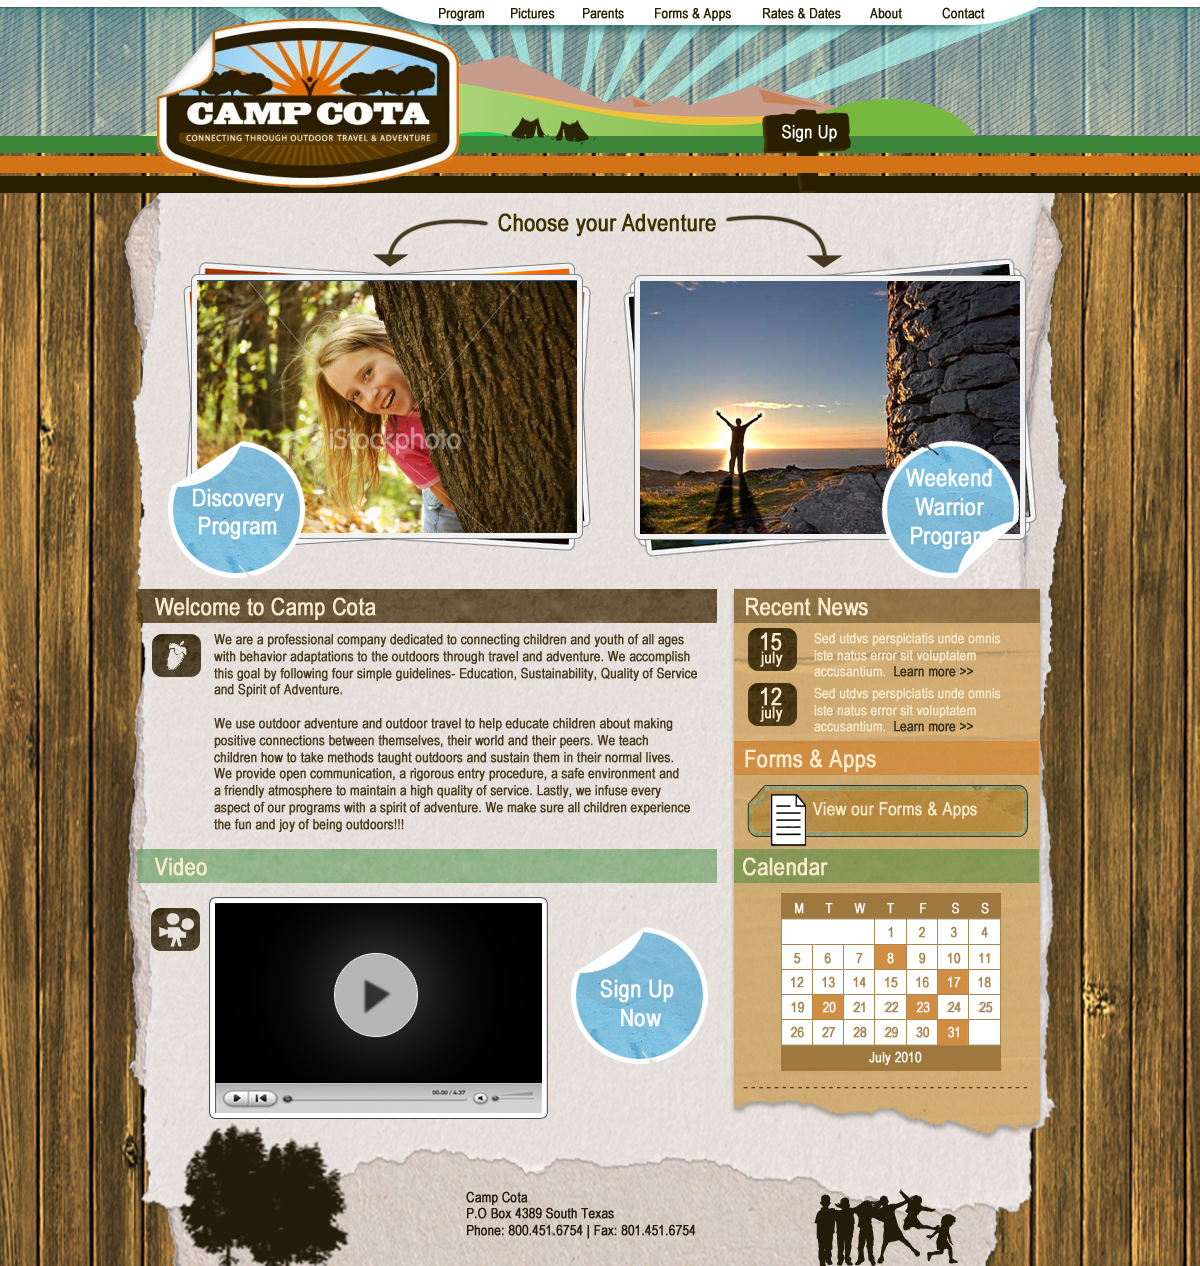 Web Page Design by Darrenmaher - Entry No. 68 in the Web Page Design Contest Camp COTA - Clean, Crisp Design Needed.